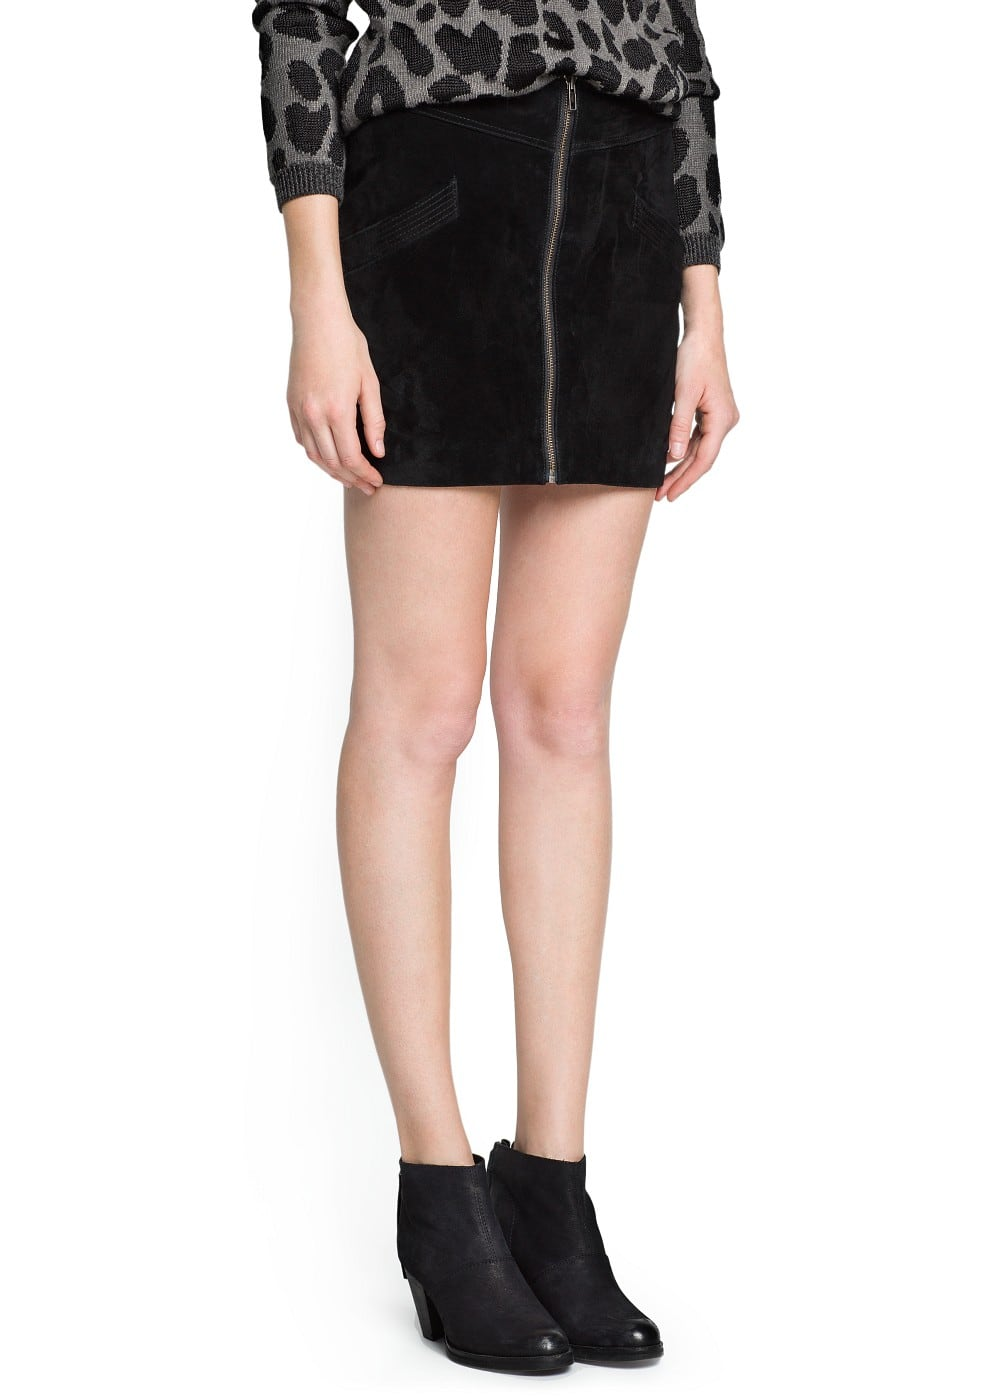 Zipper leather miniskirt